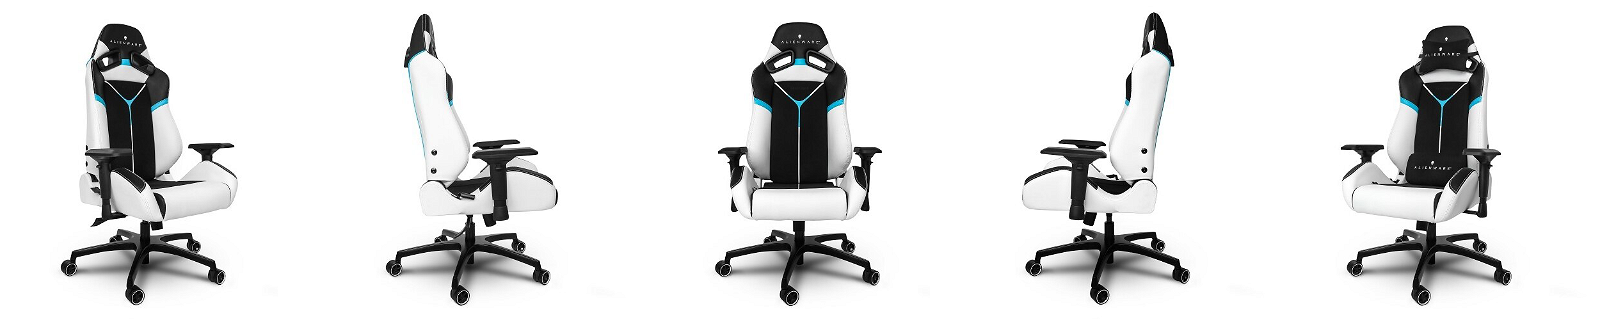 Look of Alienware Gaming Chair